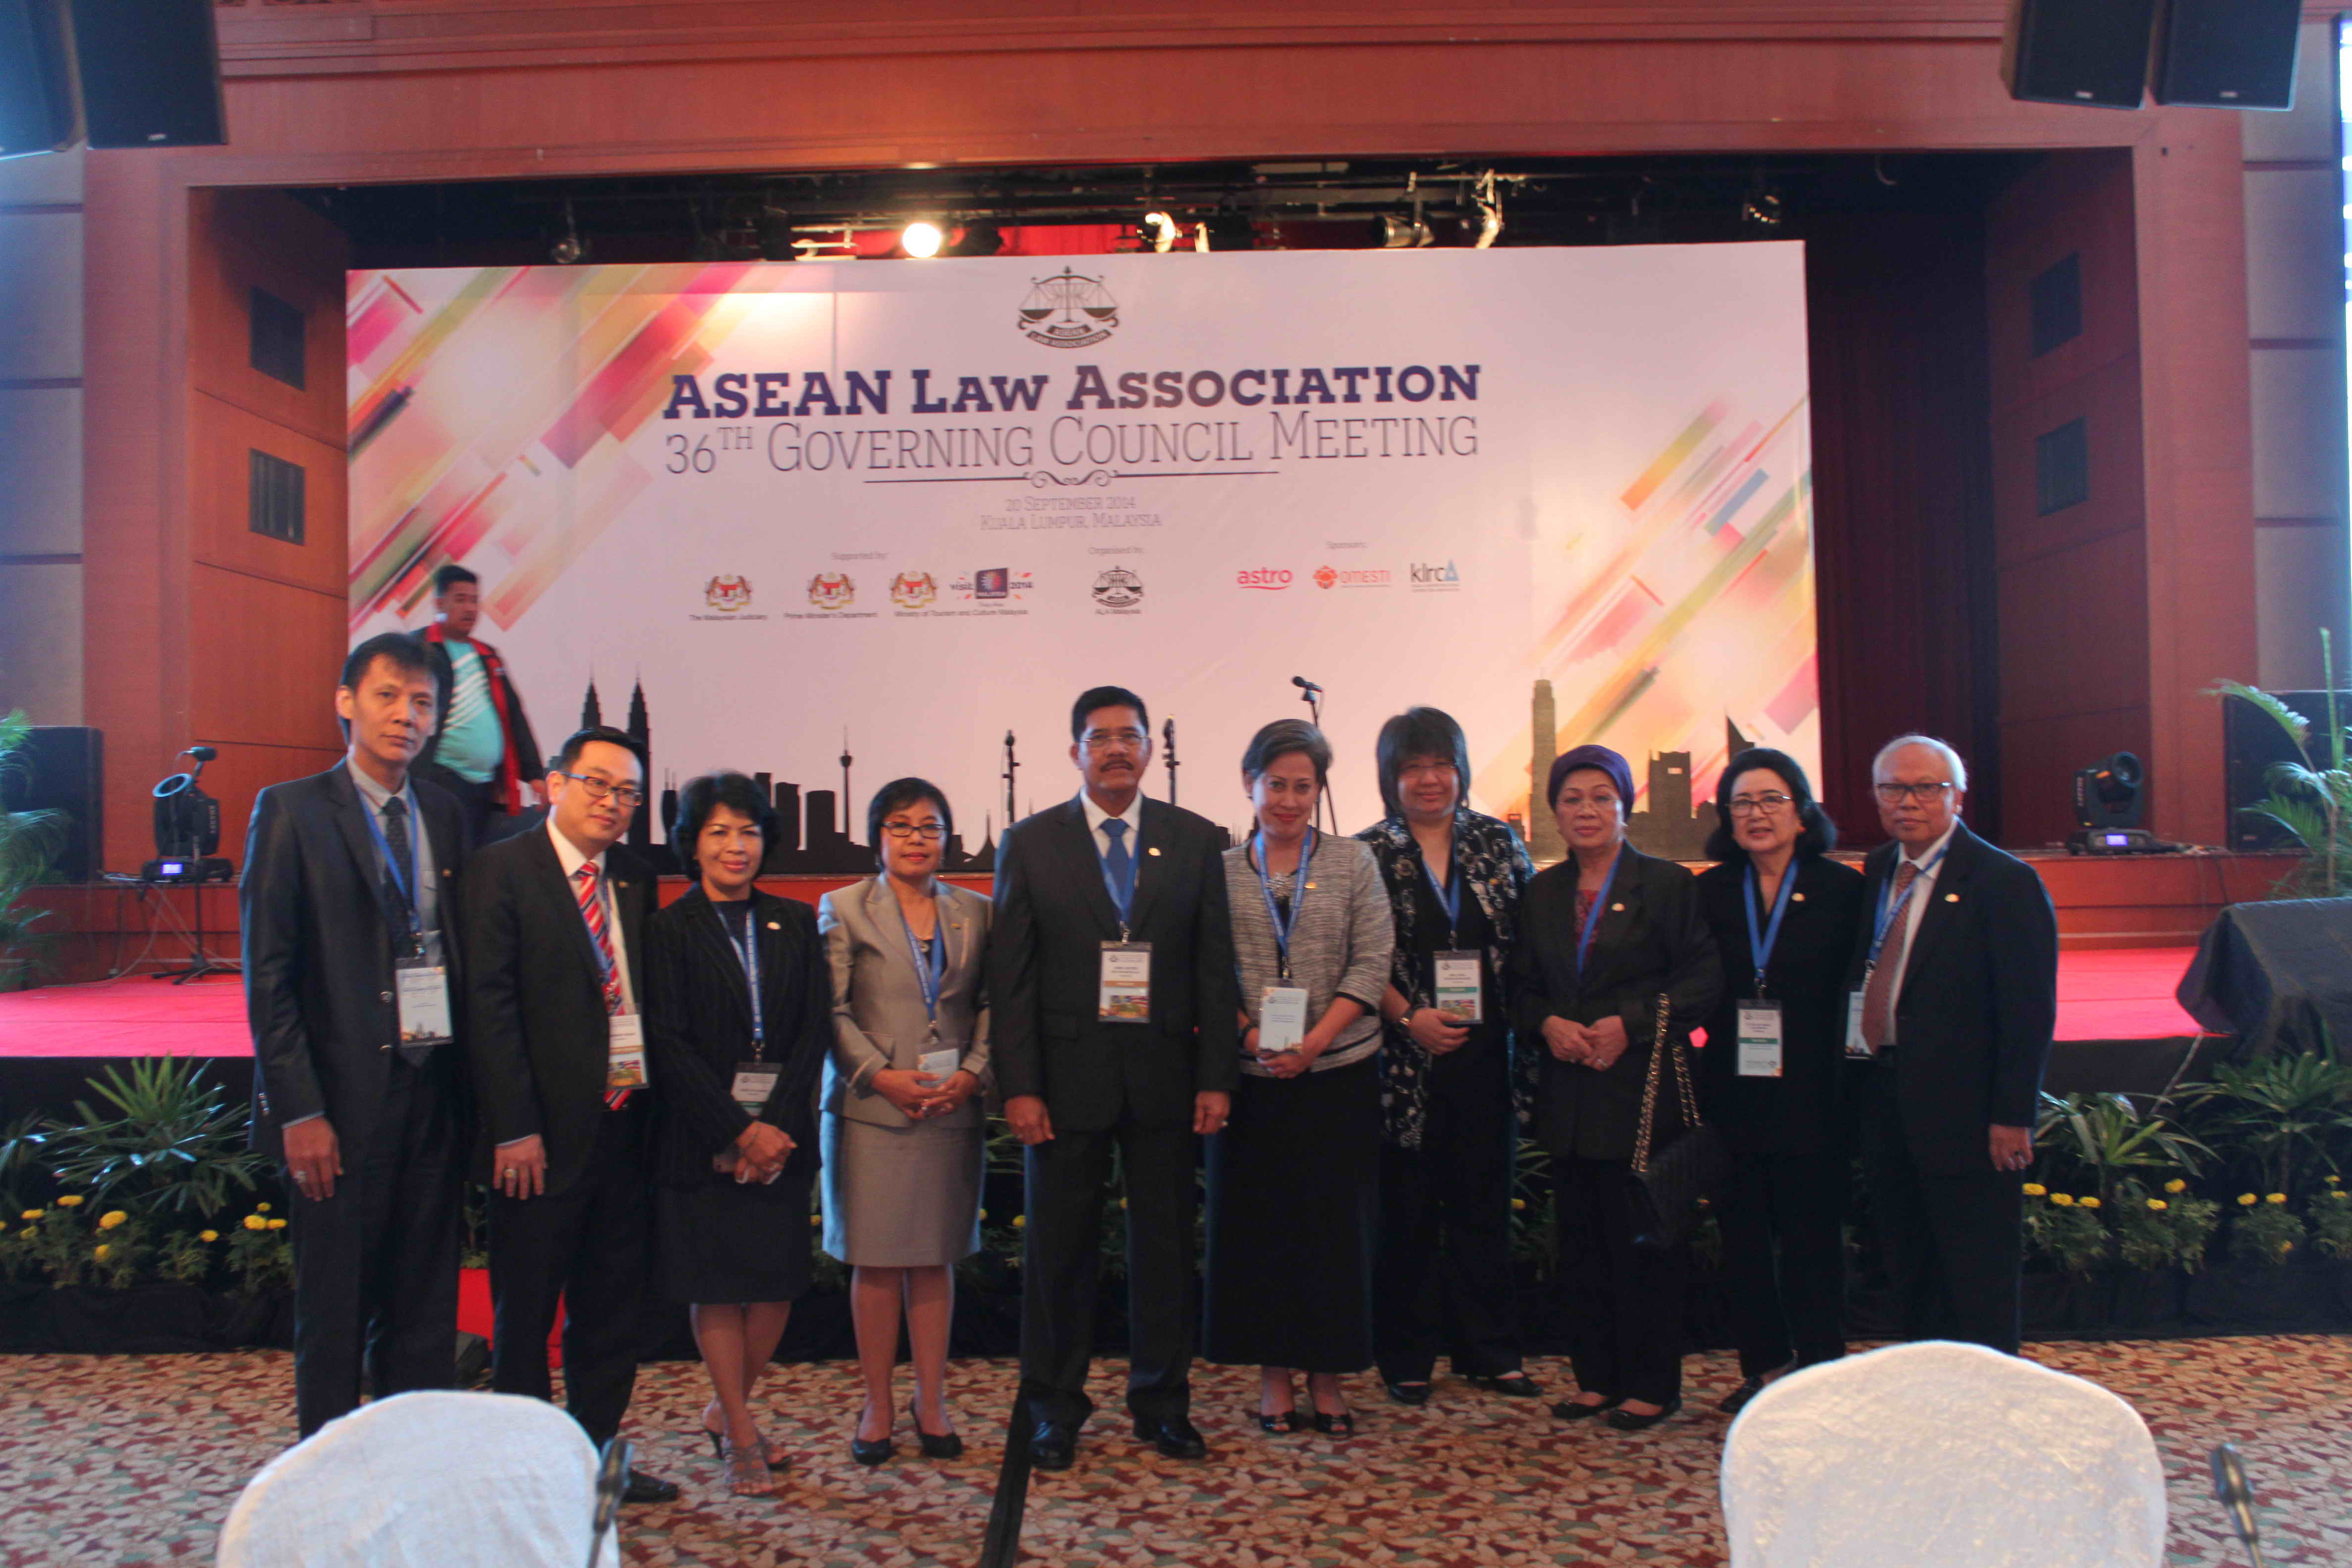 ASEAN Law Association 36th Governing Council Meeting 20140920